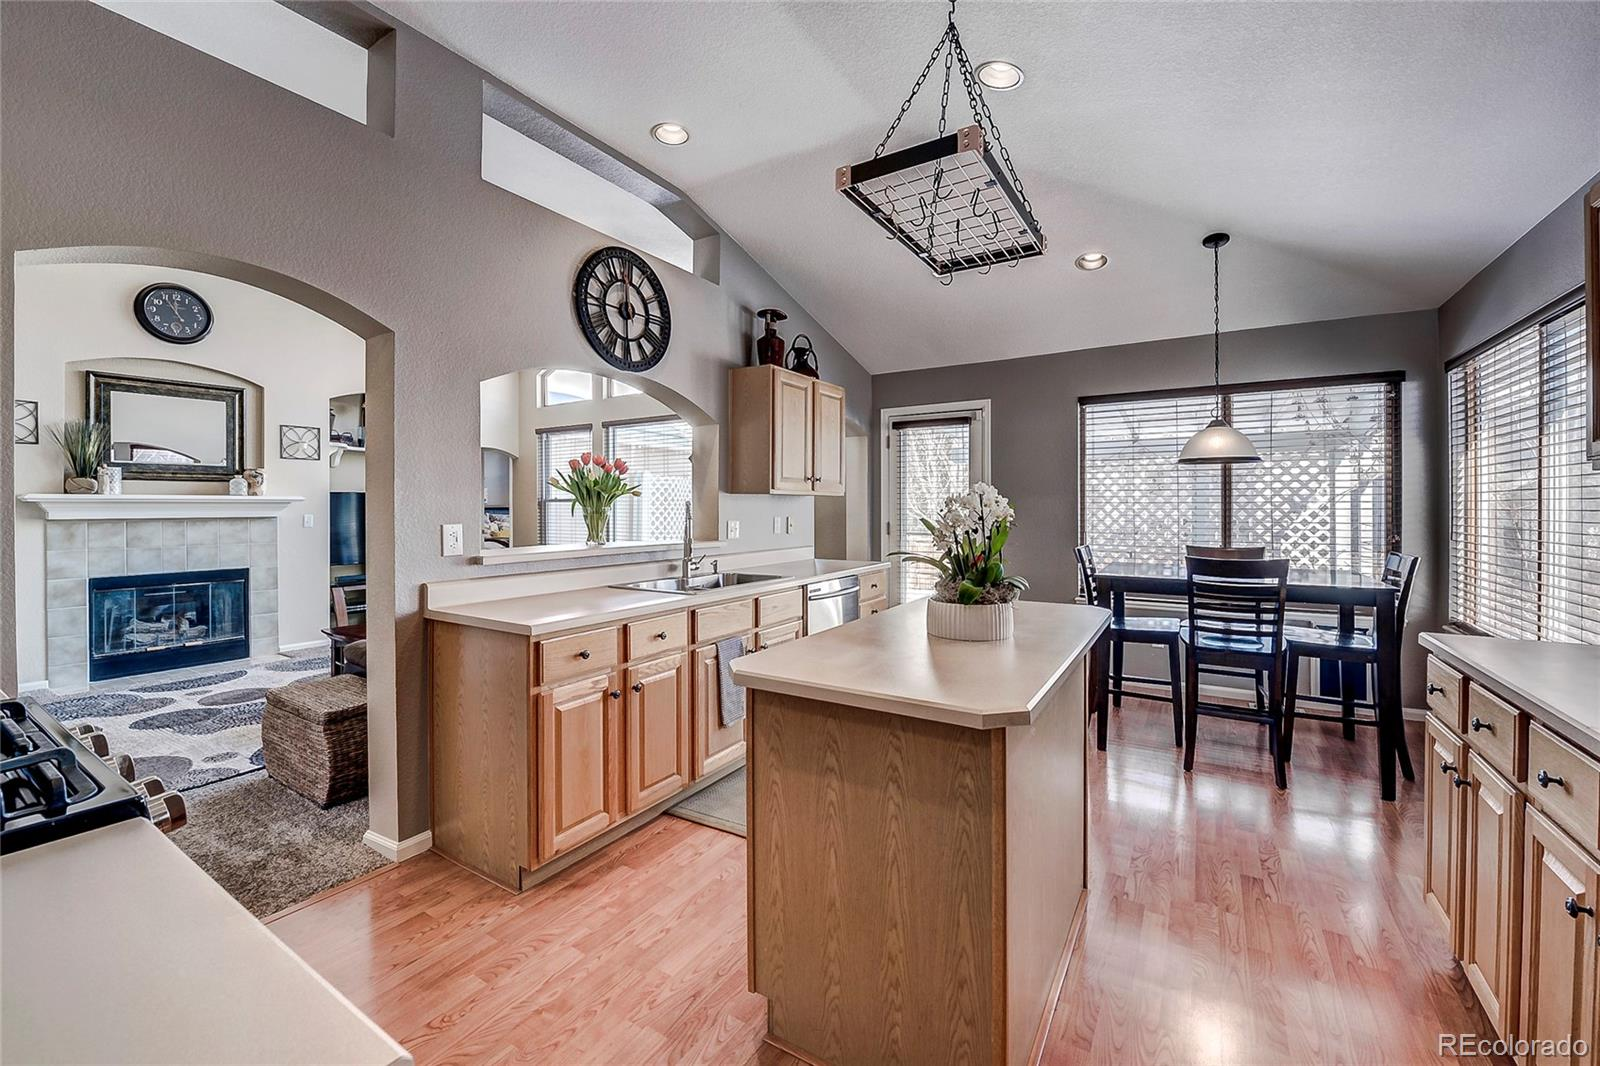 MLS# 4951528 - 5 - 15781 W 66th Place, Arvada, CO 80007